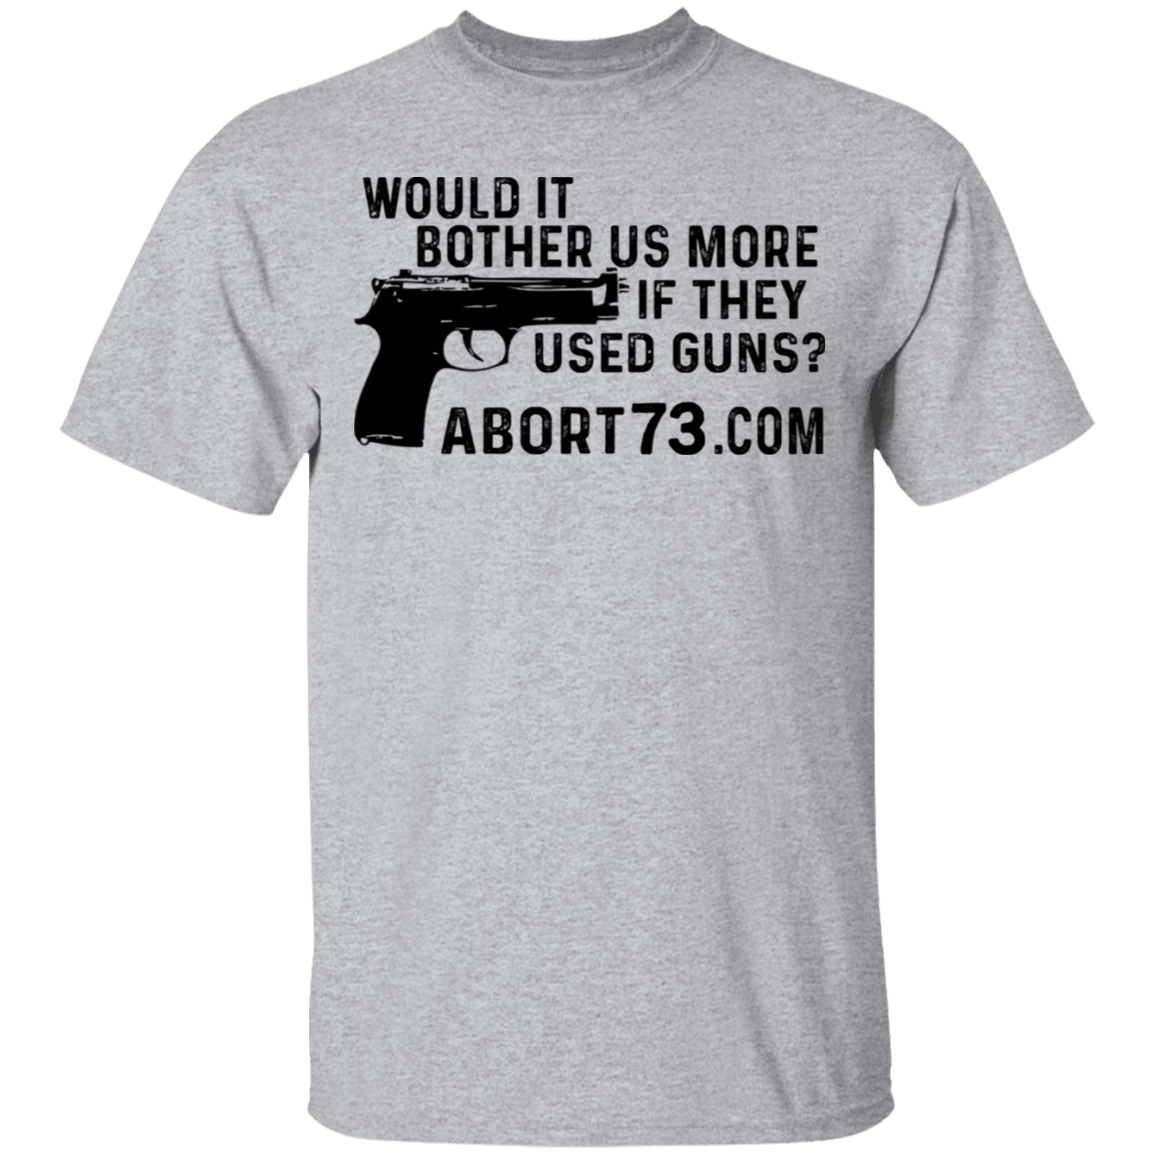 Would It Bother Us More if They Used Guns T-Shirt, Hoodies, Tank 22-115-79463679-254 - Tee Ript